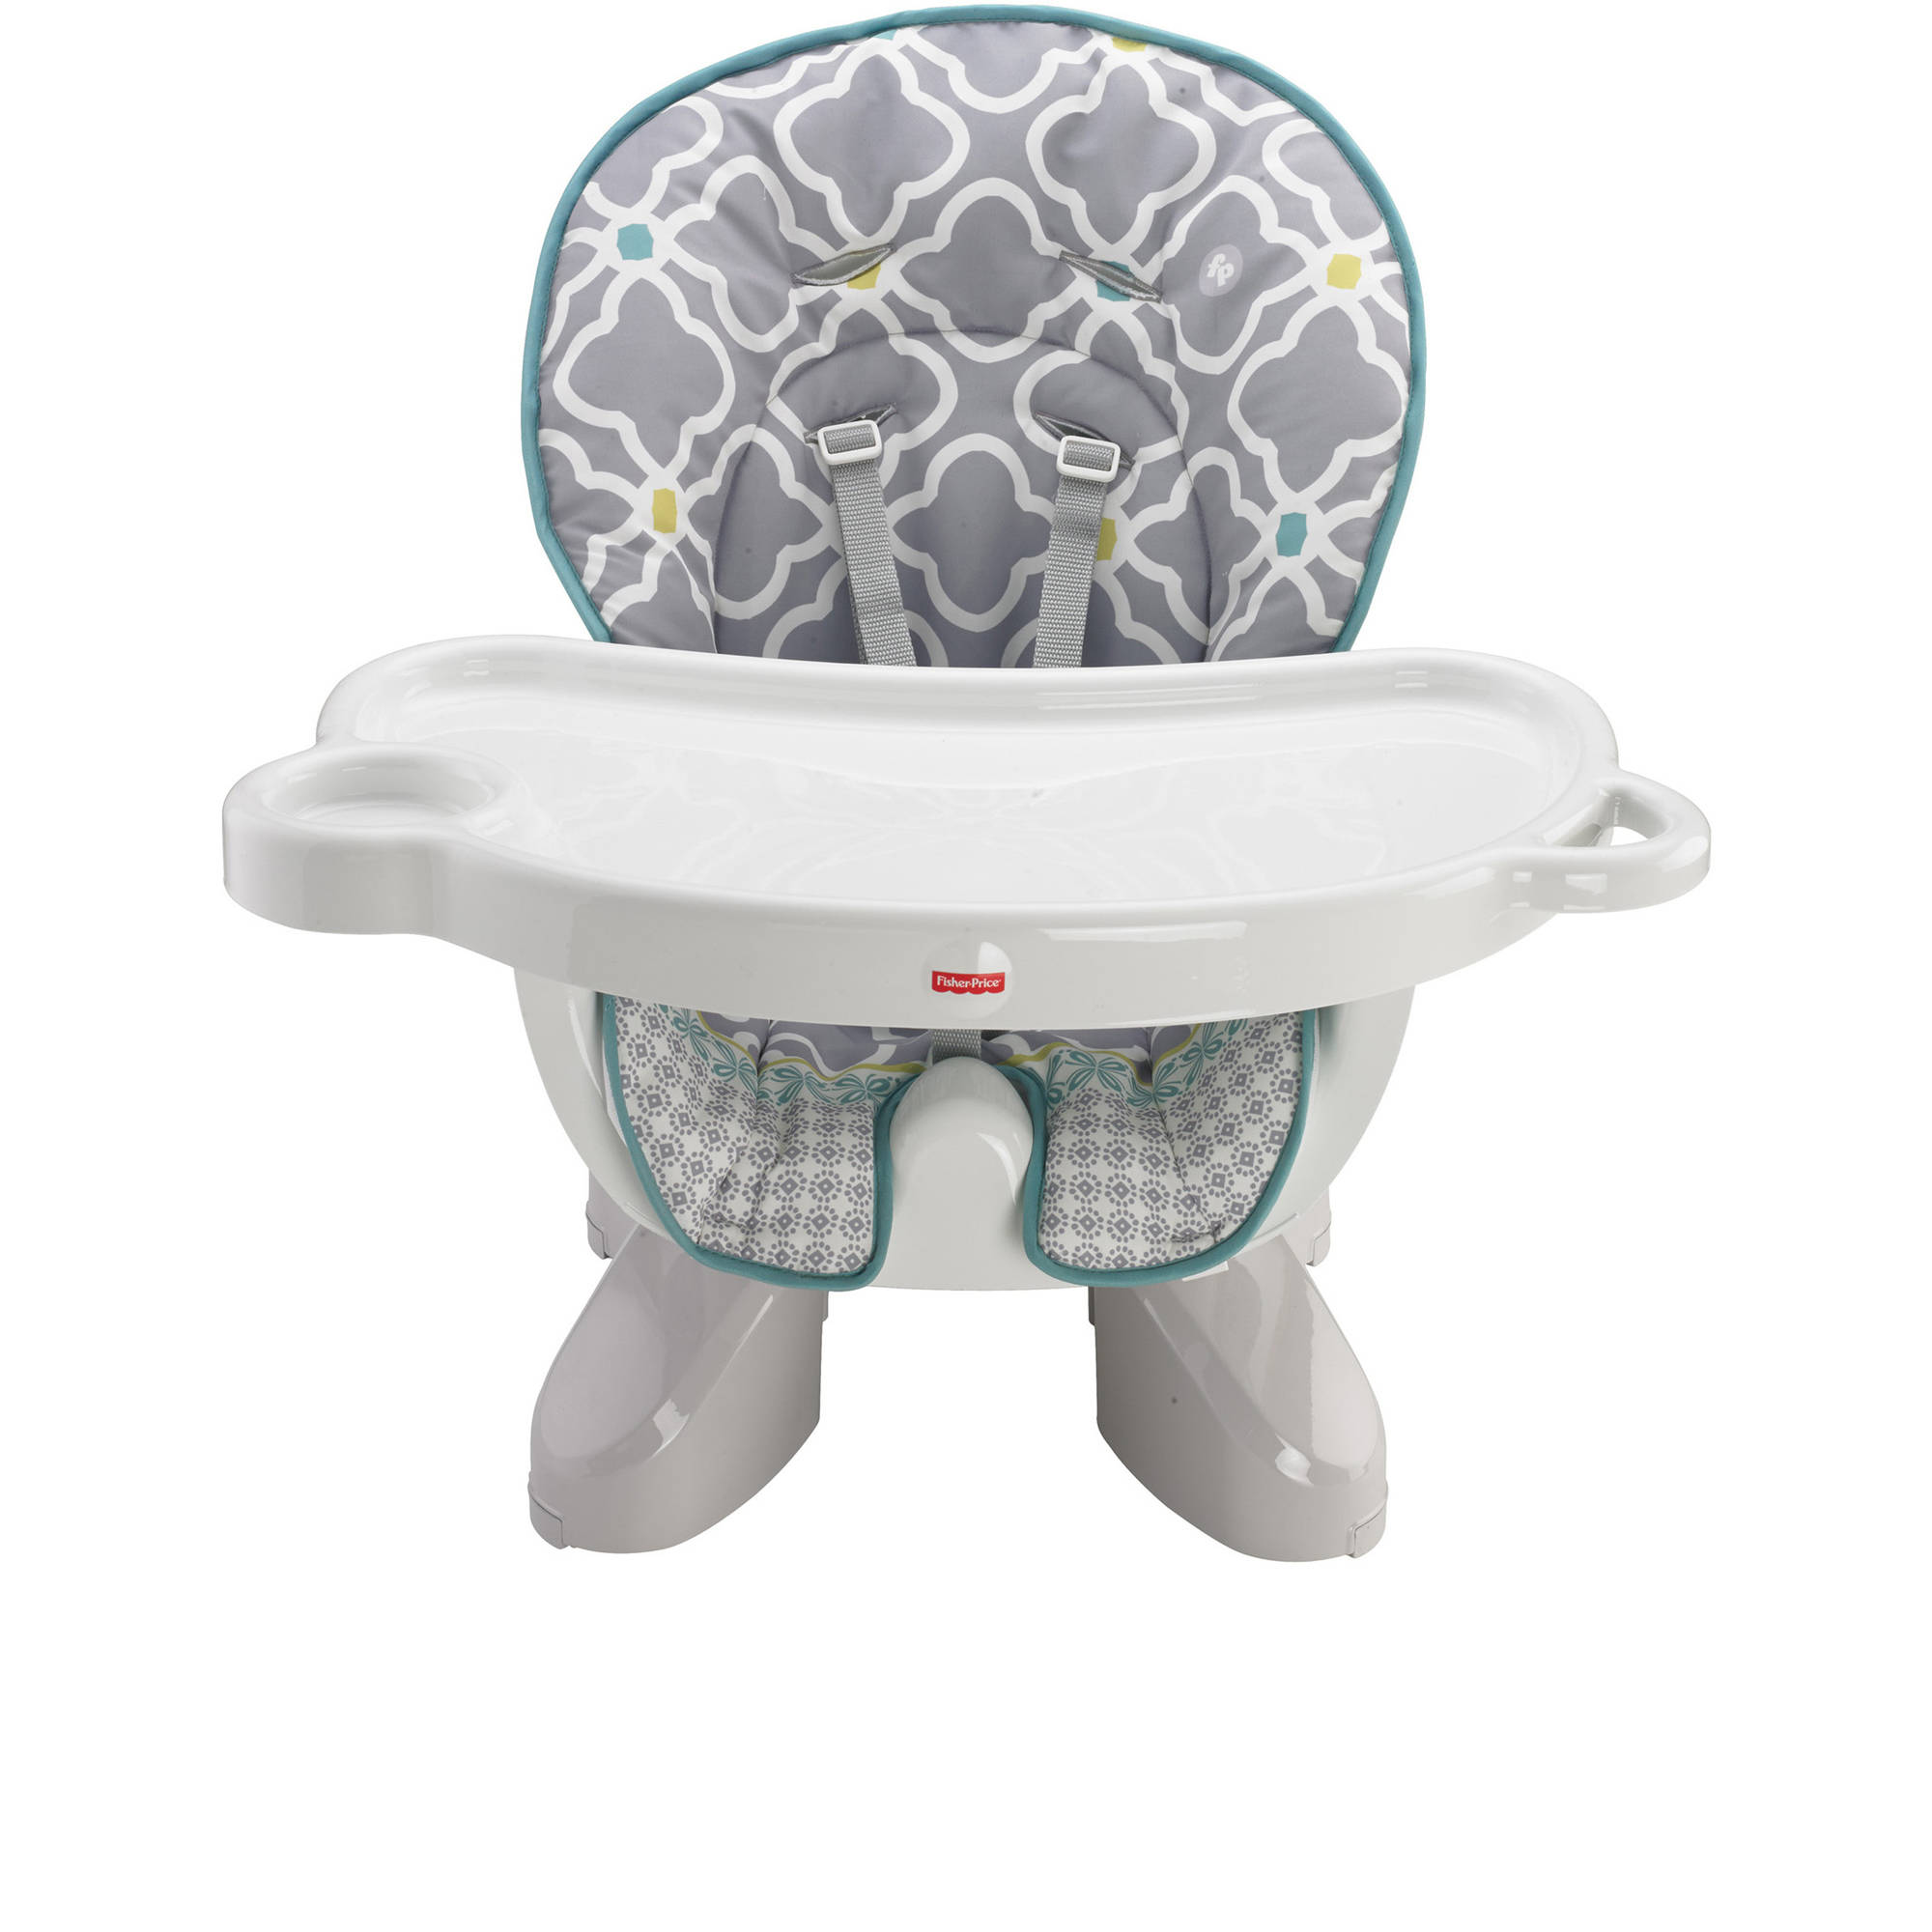 Fisher-Price SpaceSaver High Chair, Morning Fog